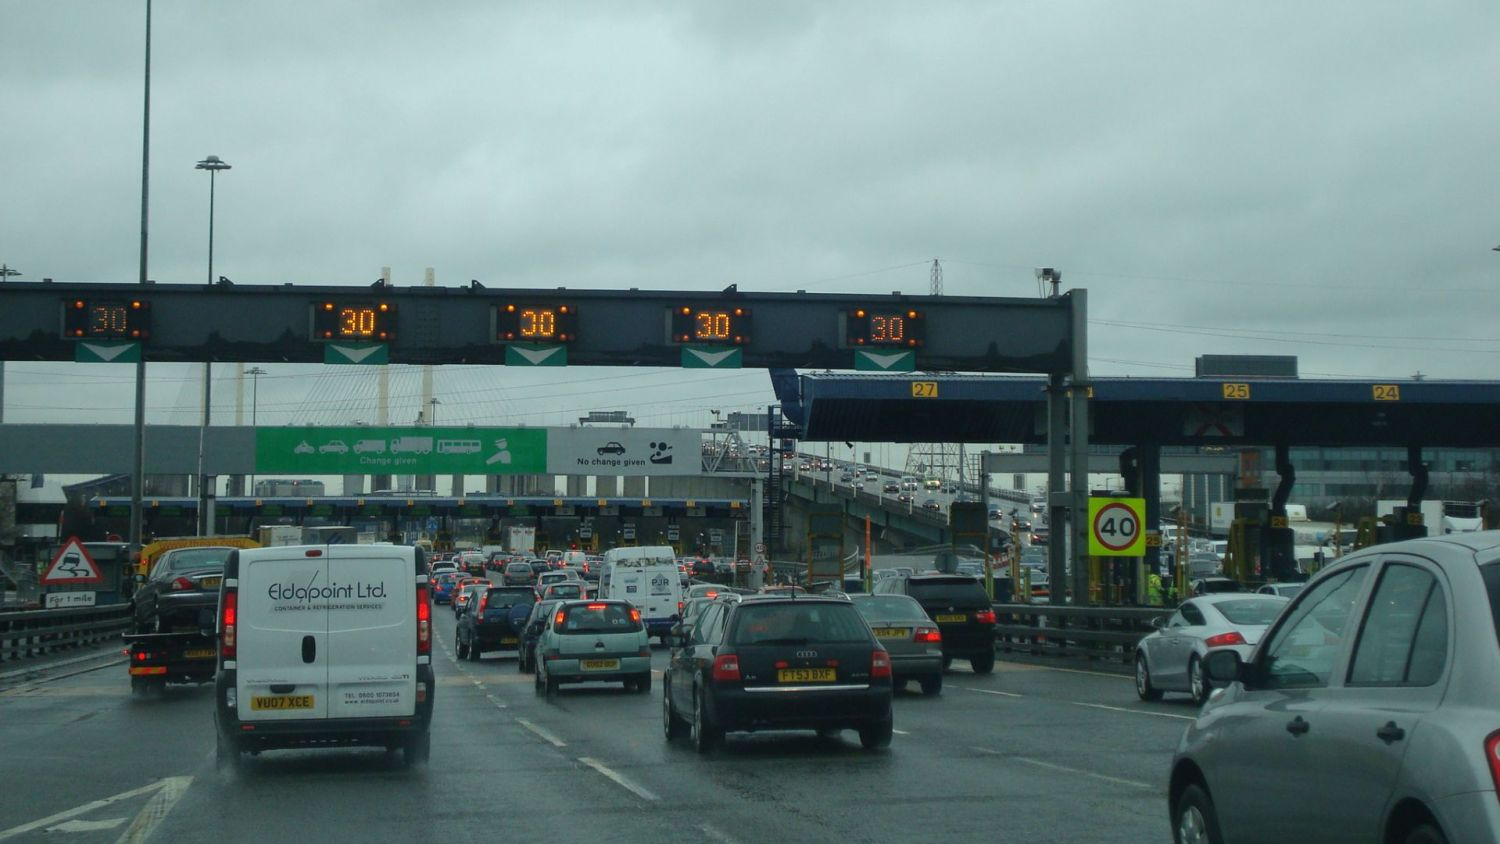 Foreign drivers avoiding Dart Charge